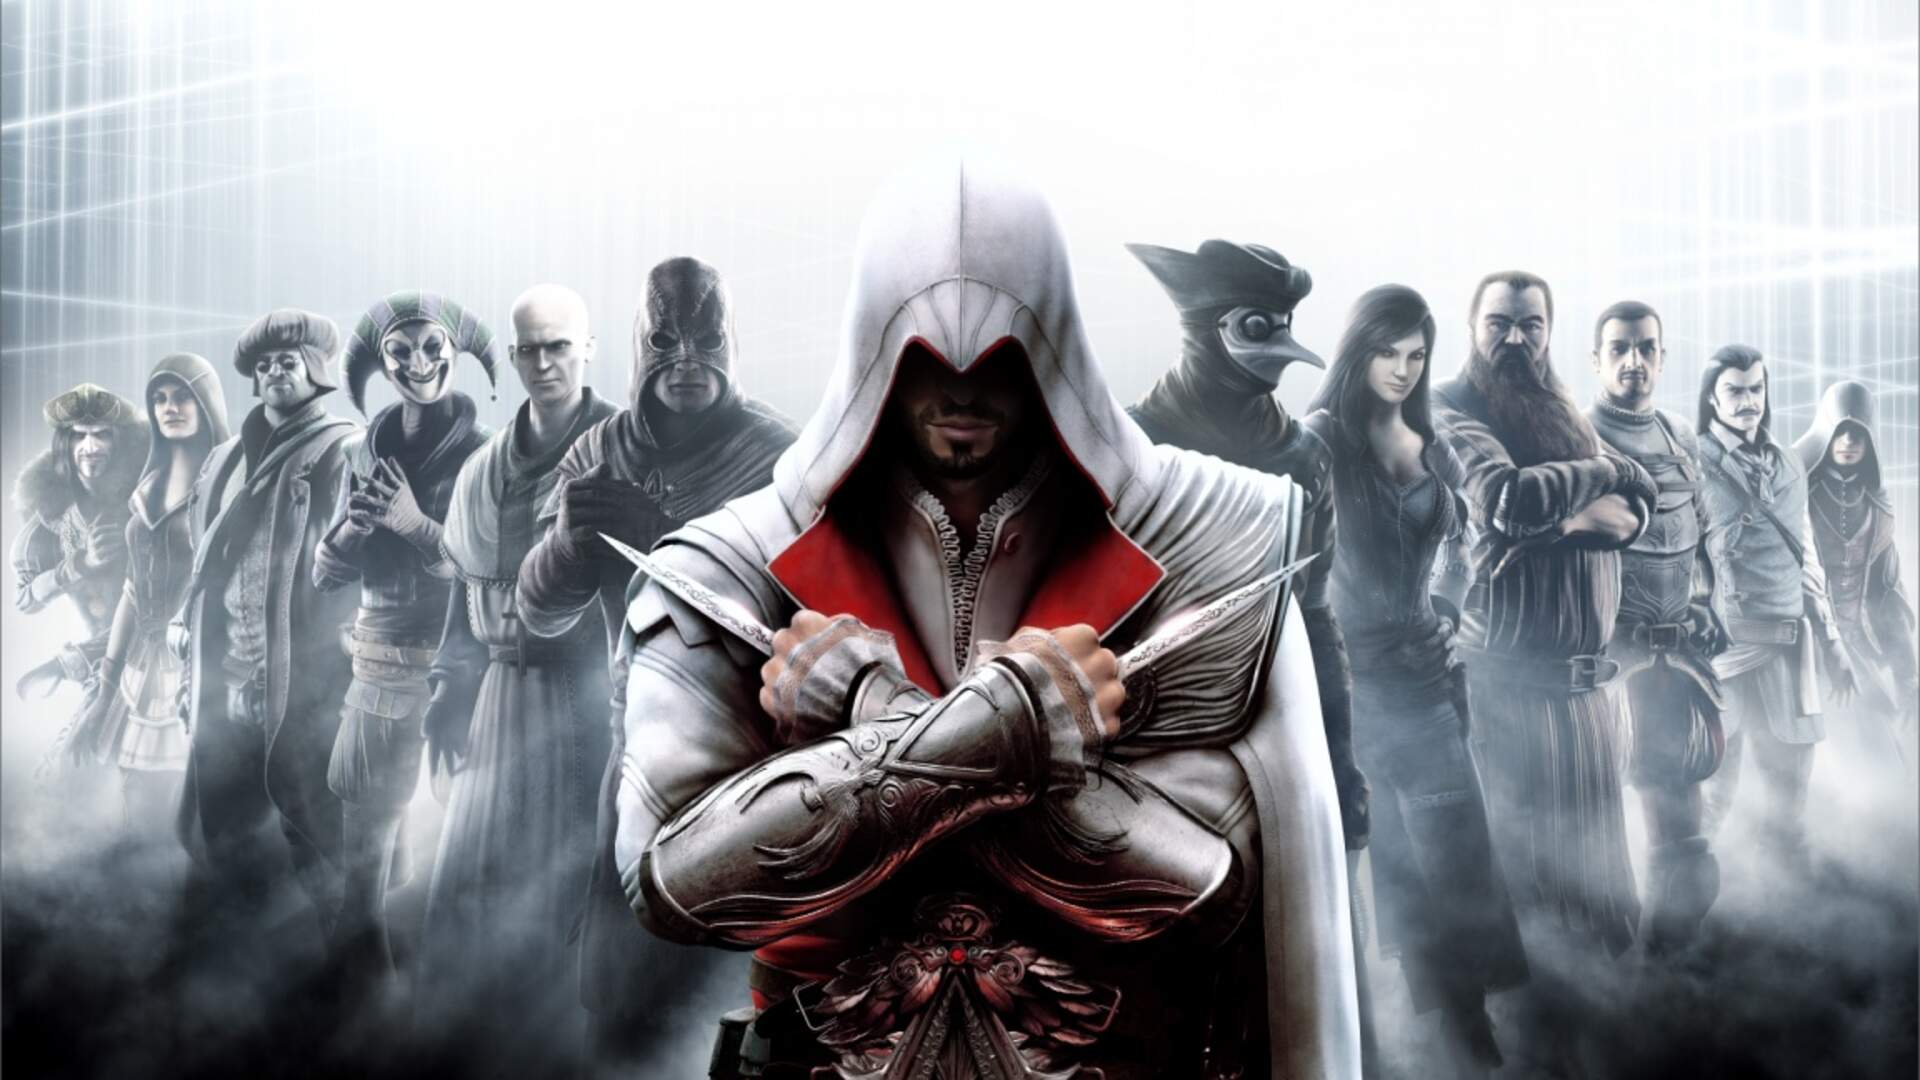 Netflix Is Working on a Live-Action Assassin's Creed Series